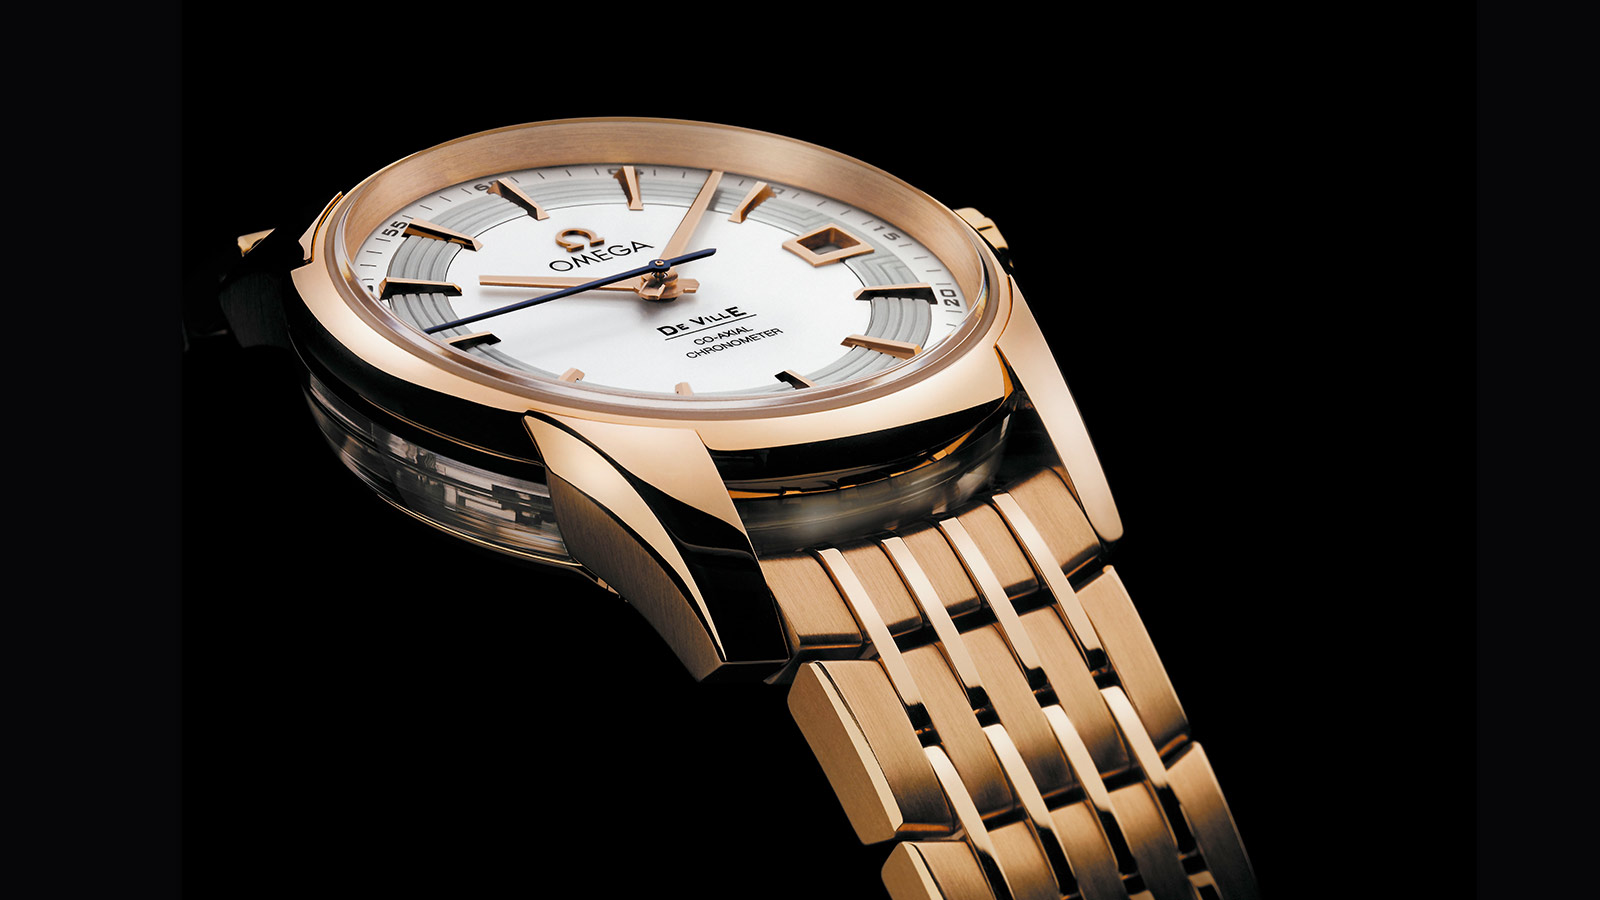 De Ville Hour Vision Hour Vision Omega Co‑Axial 41 mm - 431.60.41.21.02.001 - View 1